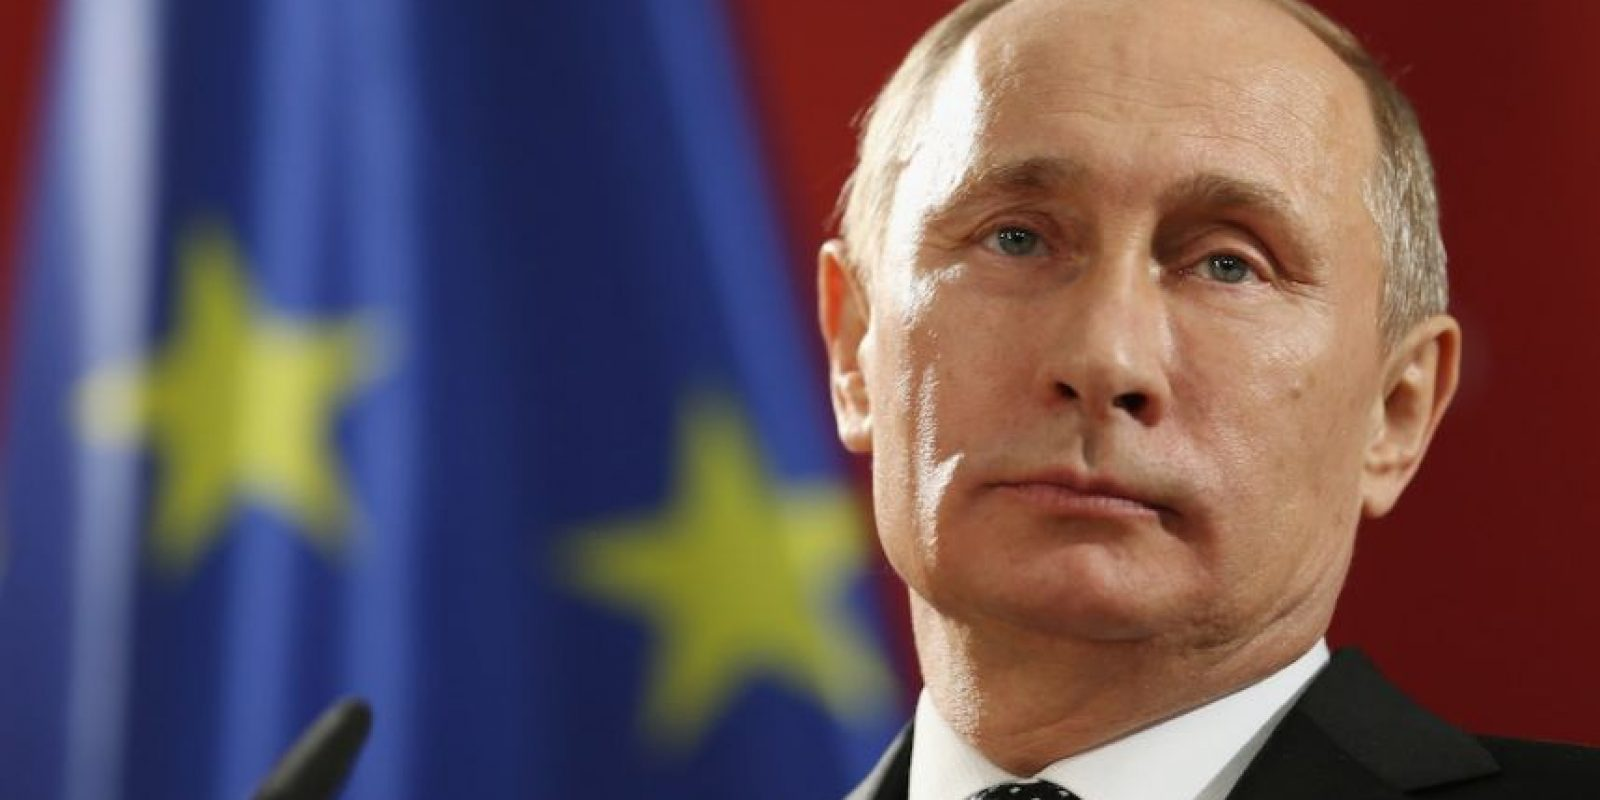 Ejército trol de Putin. Foto: Getty Images